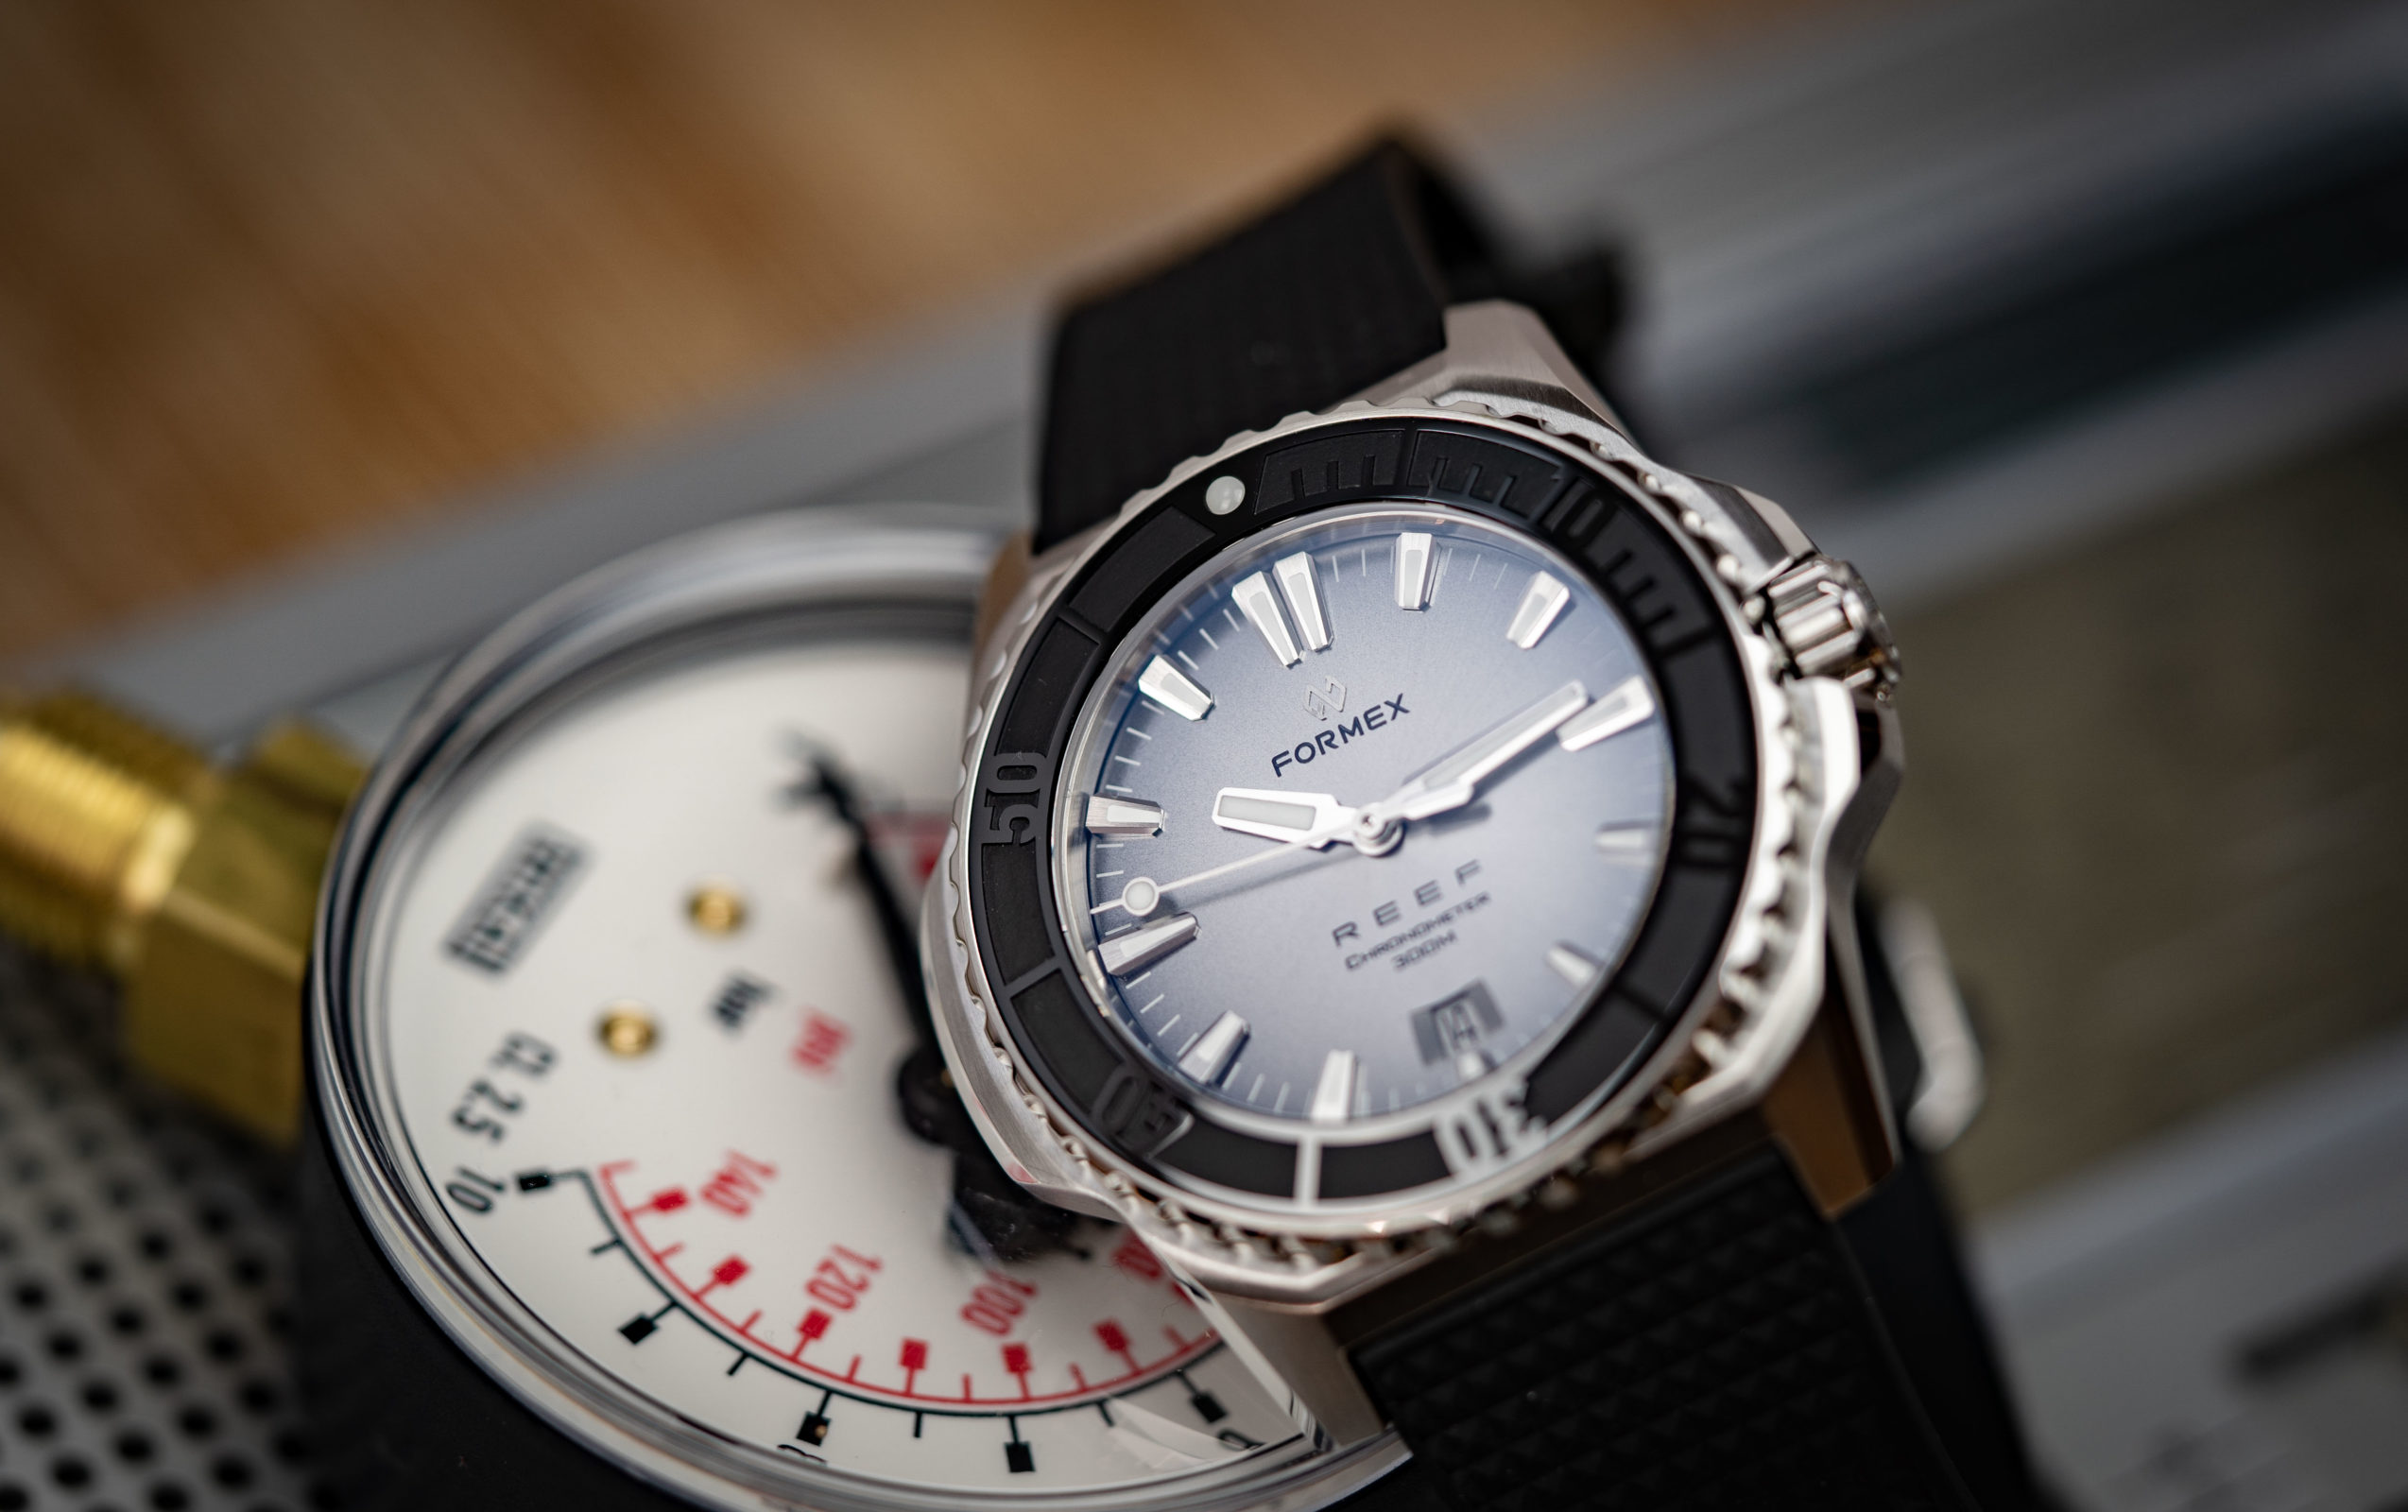 Formex-Reef-Automatik-Chronometer-300m-Hands-On